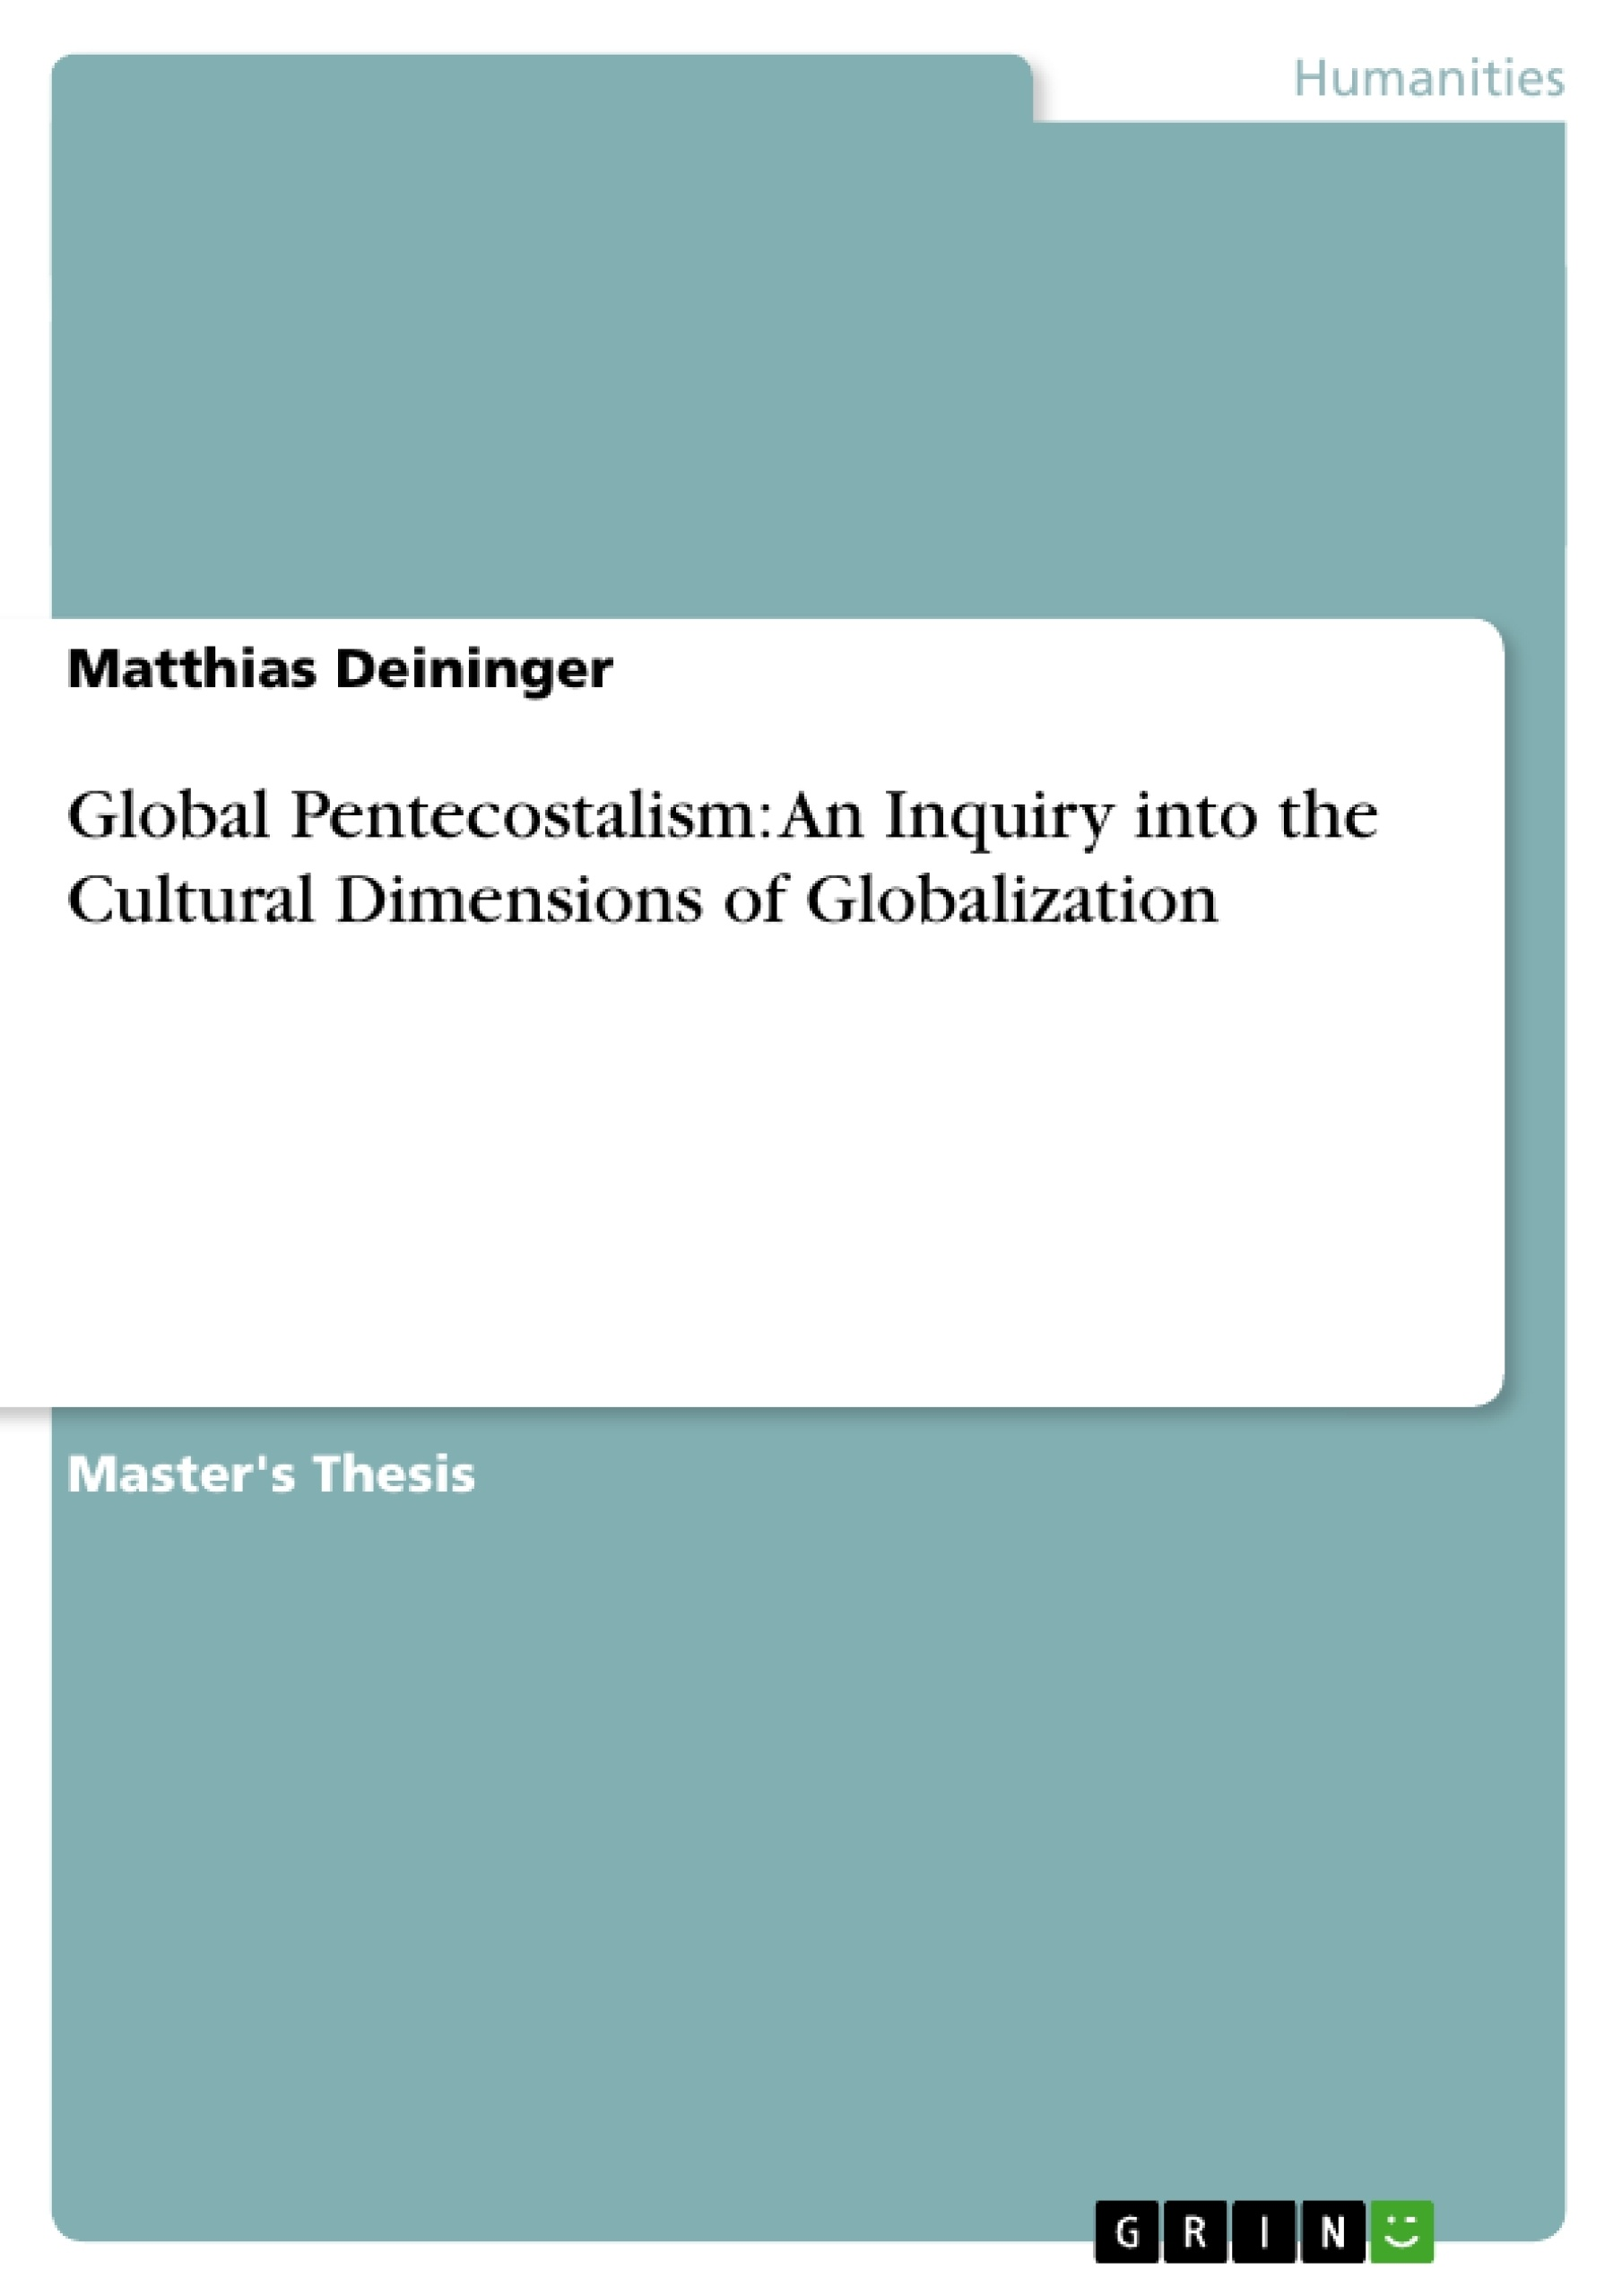 Title: Global Pentecostalism: An Inquiry into the Cultural Dimensions of Globalization